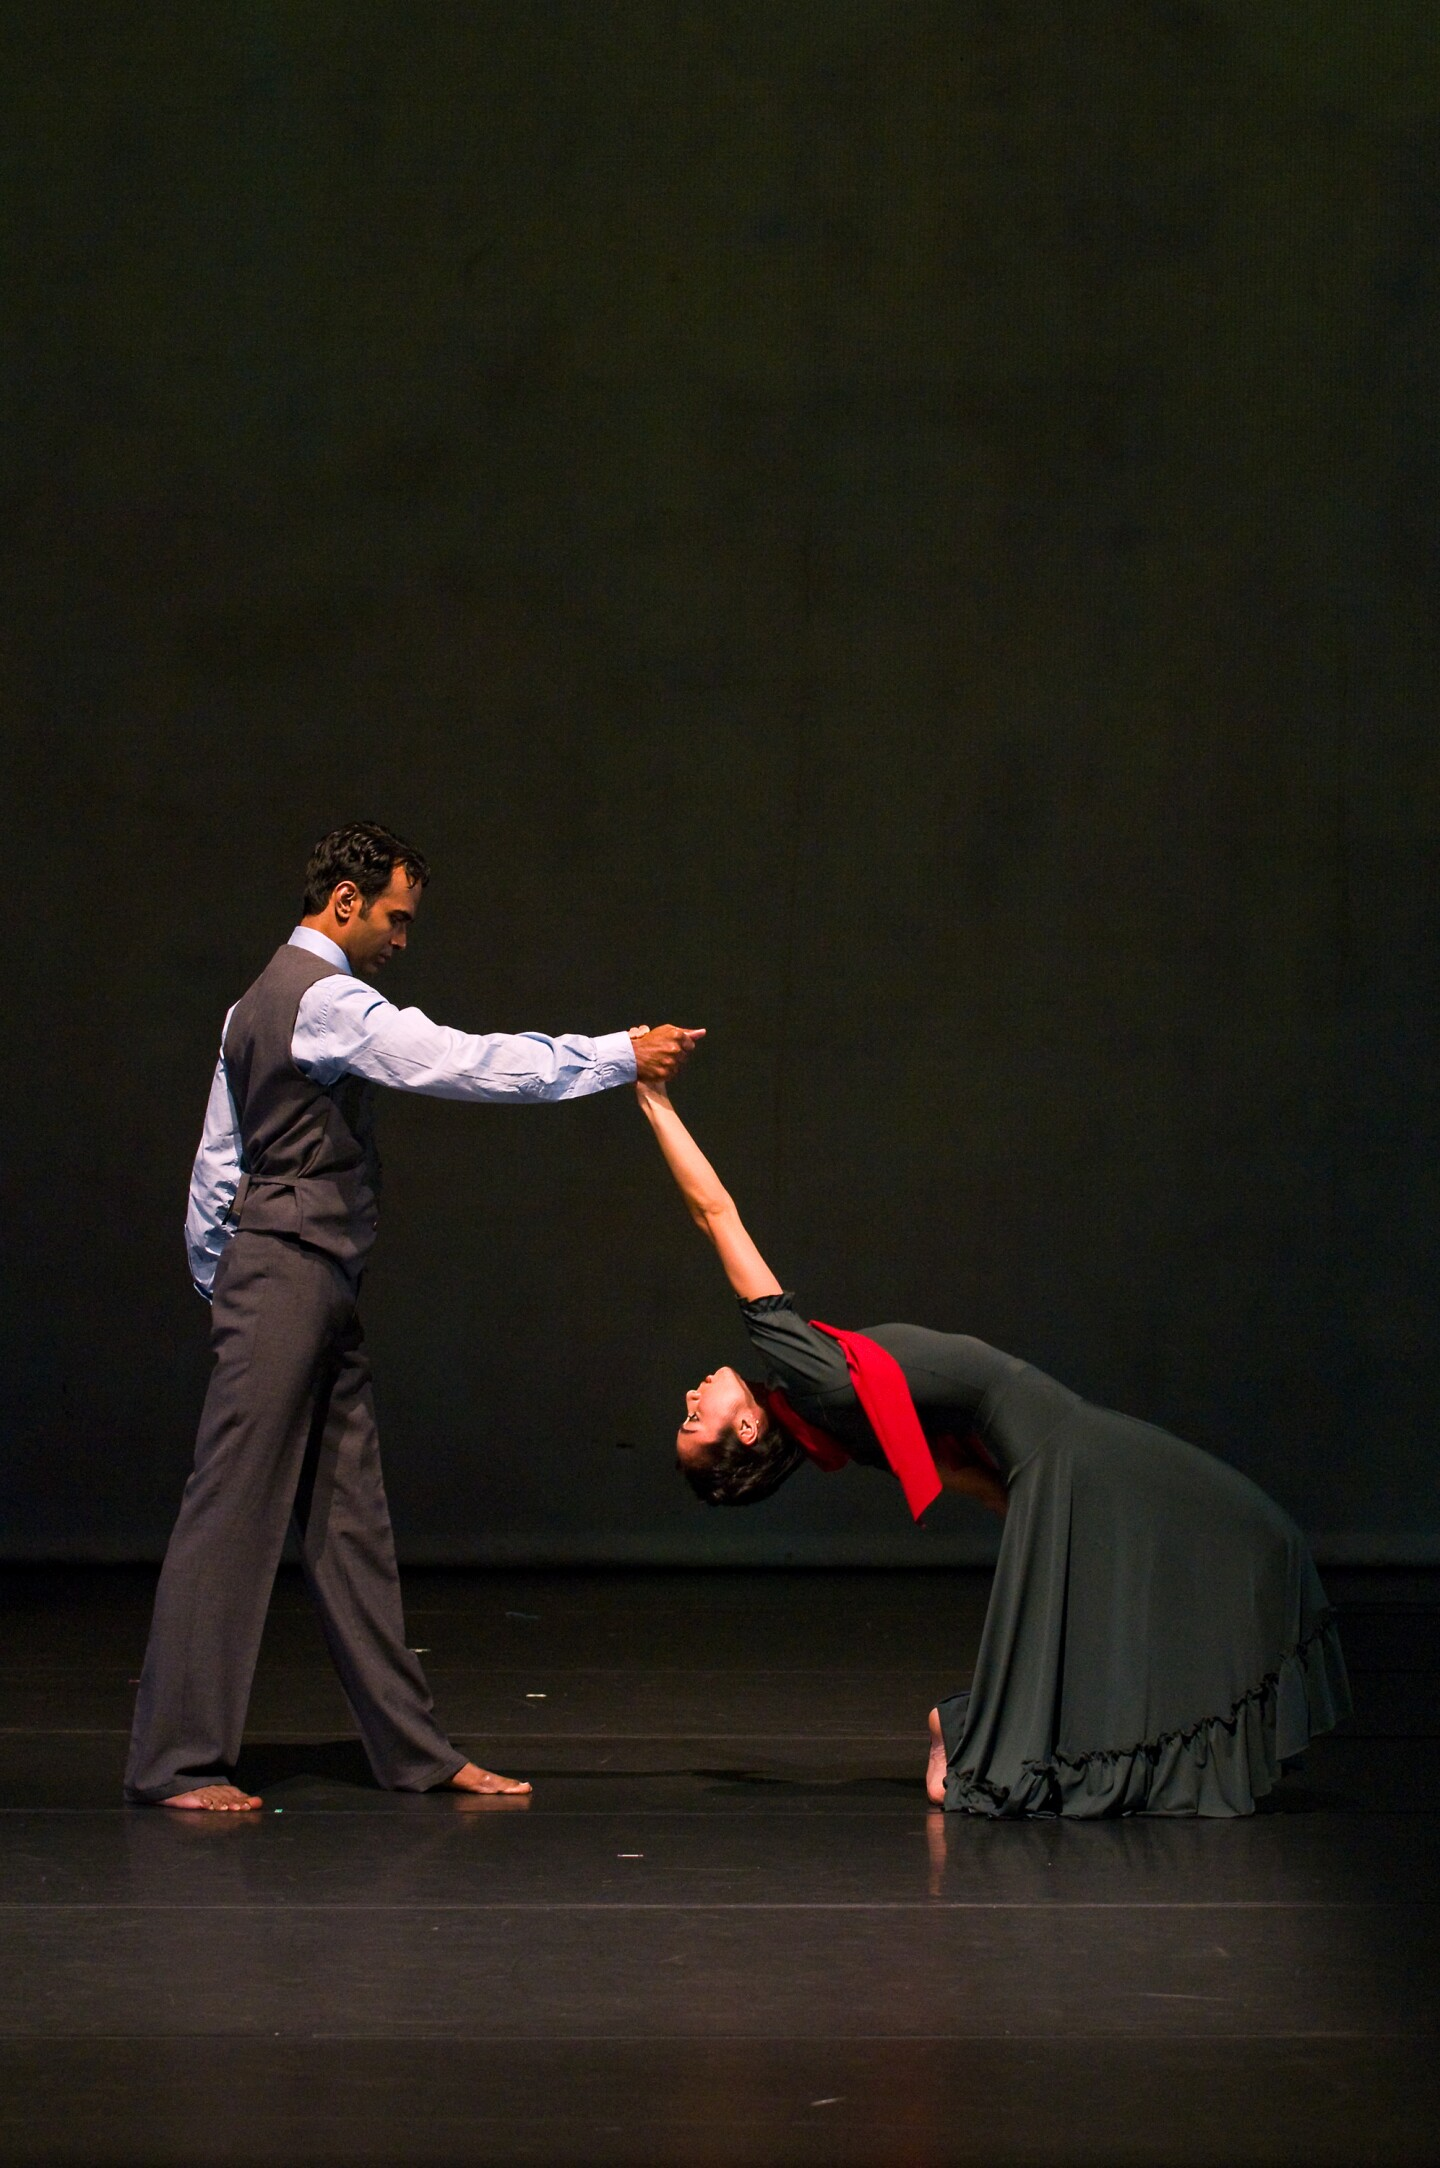 A barefoot man and woman dance together.